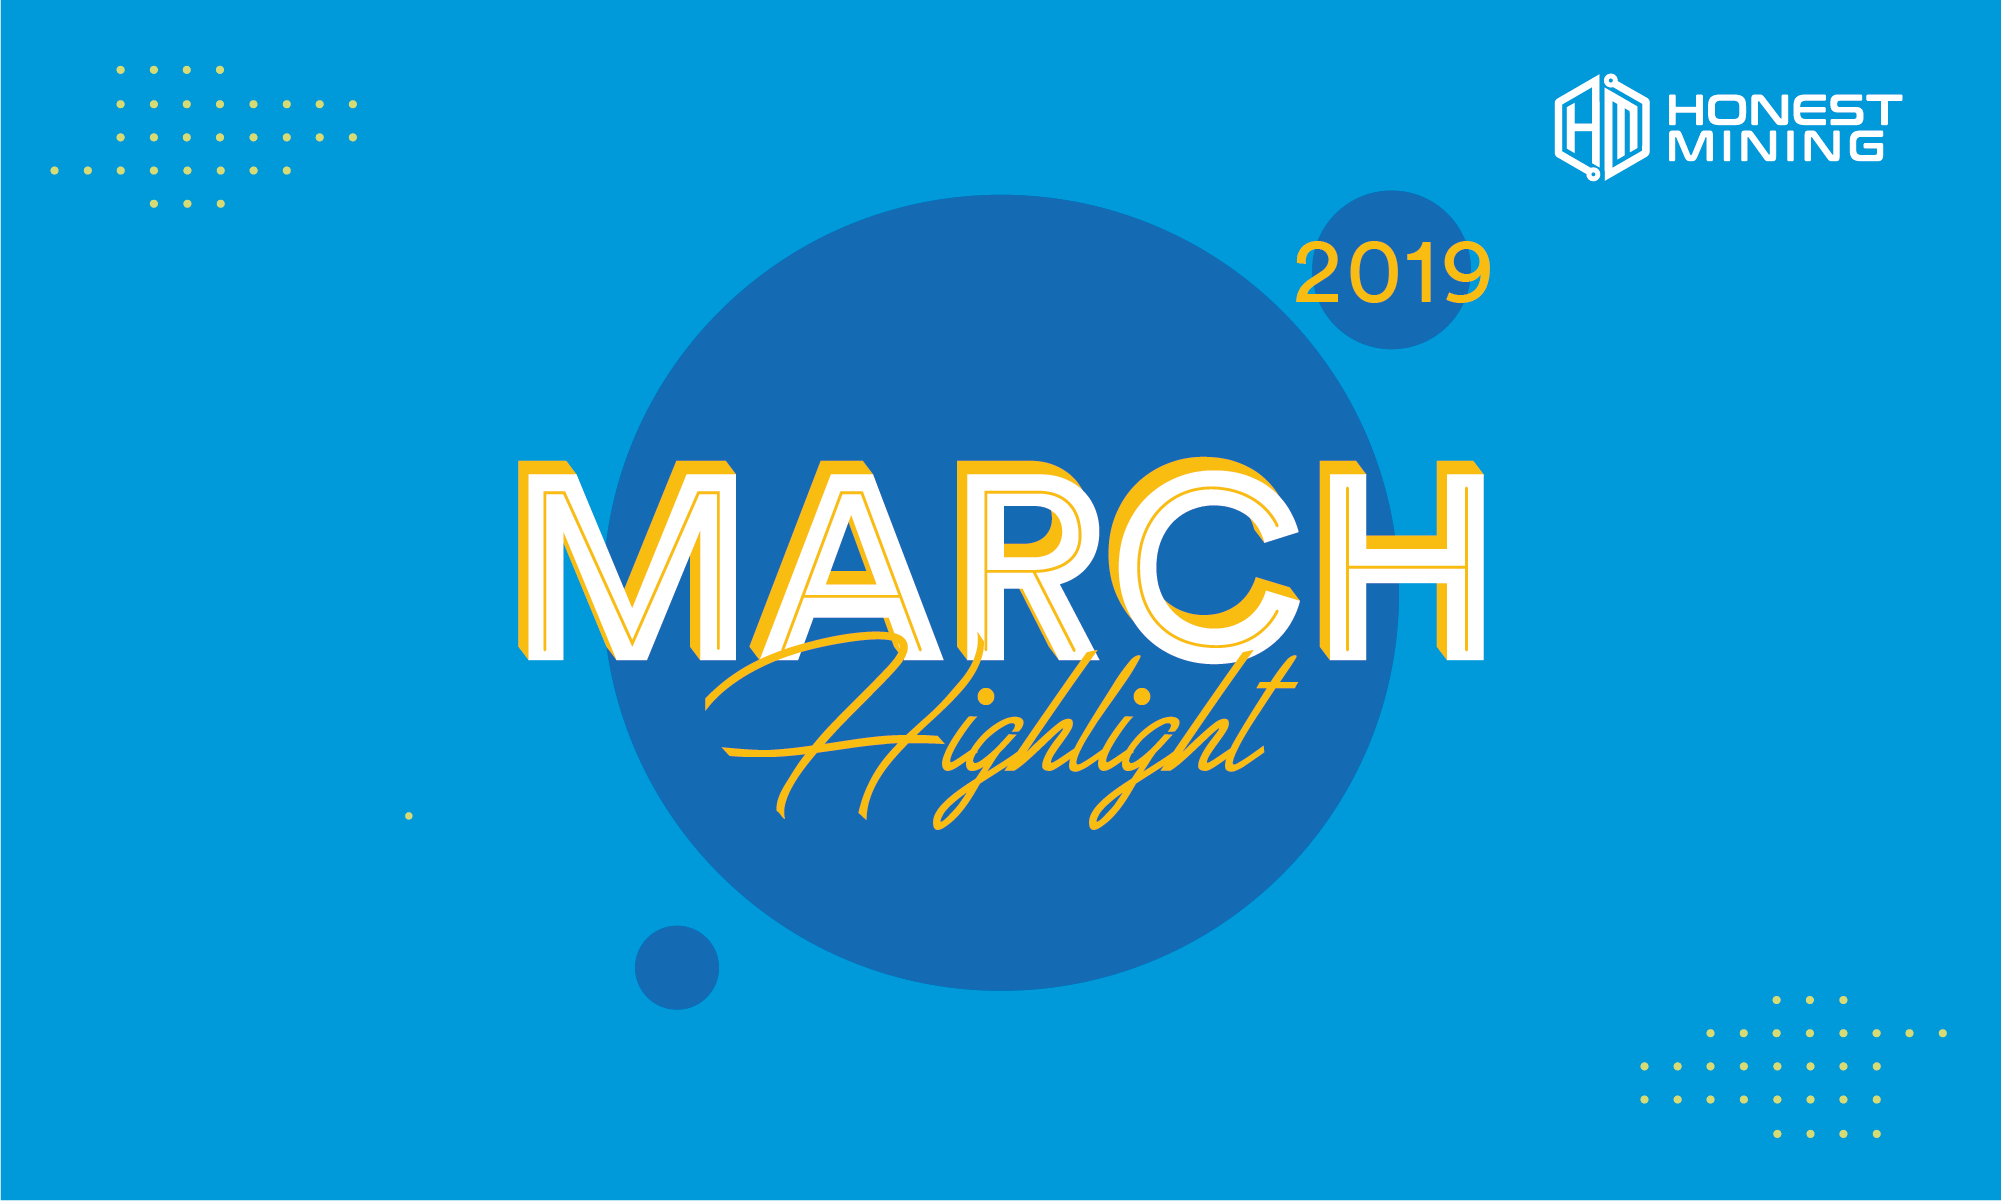 Honest Mining March 2019 Highlight